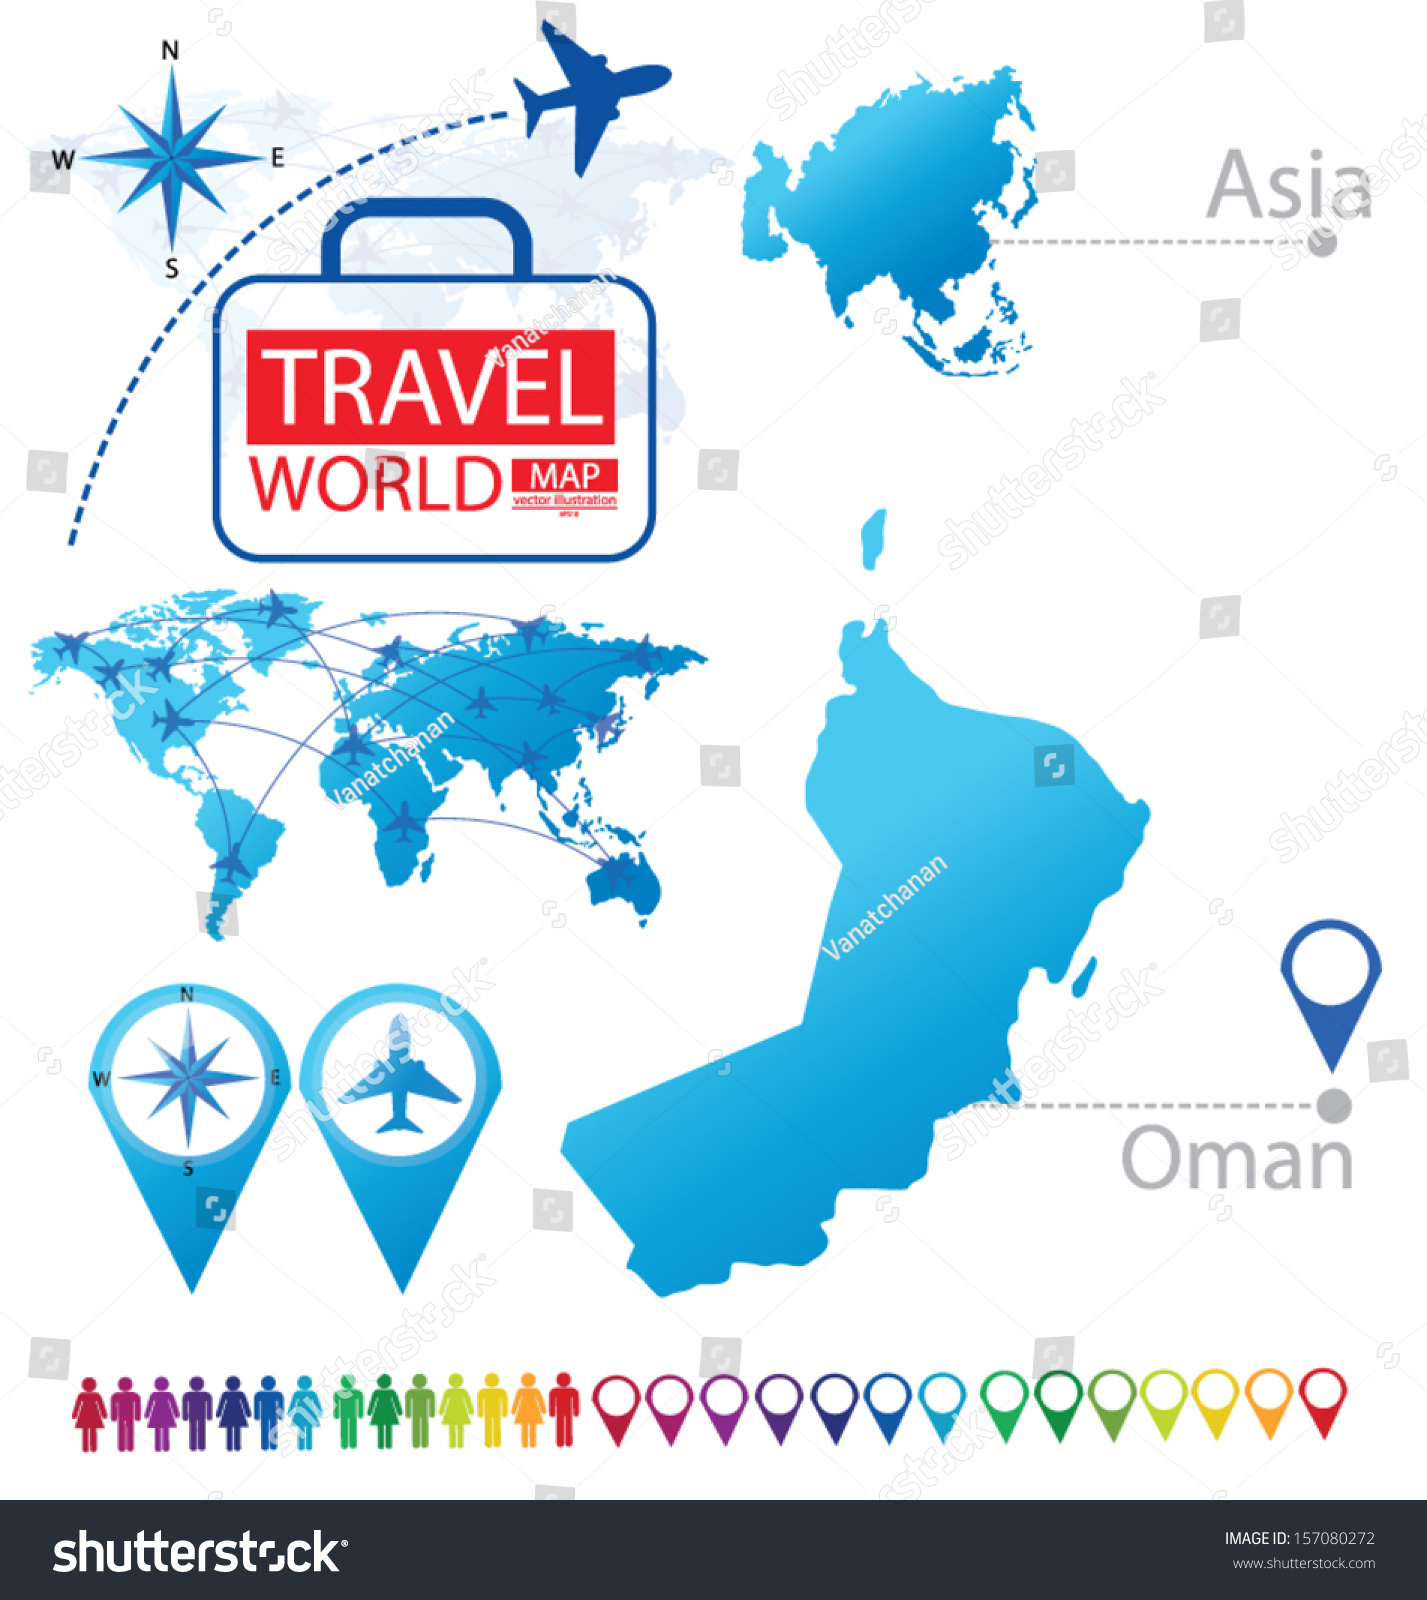 Sultanate Oman Asia World Map Travel Stock Vector - Oman in world map